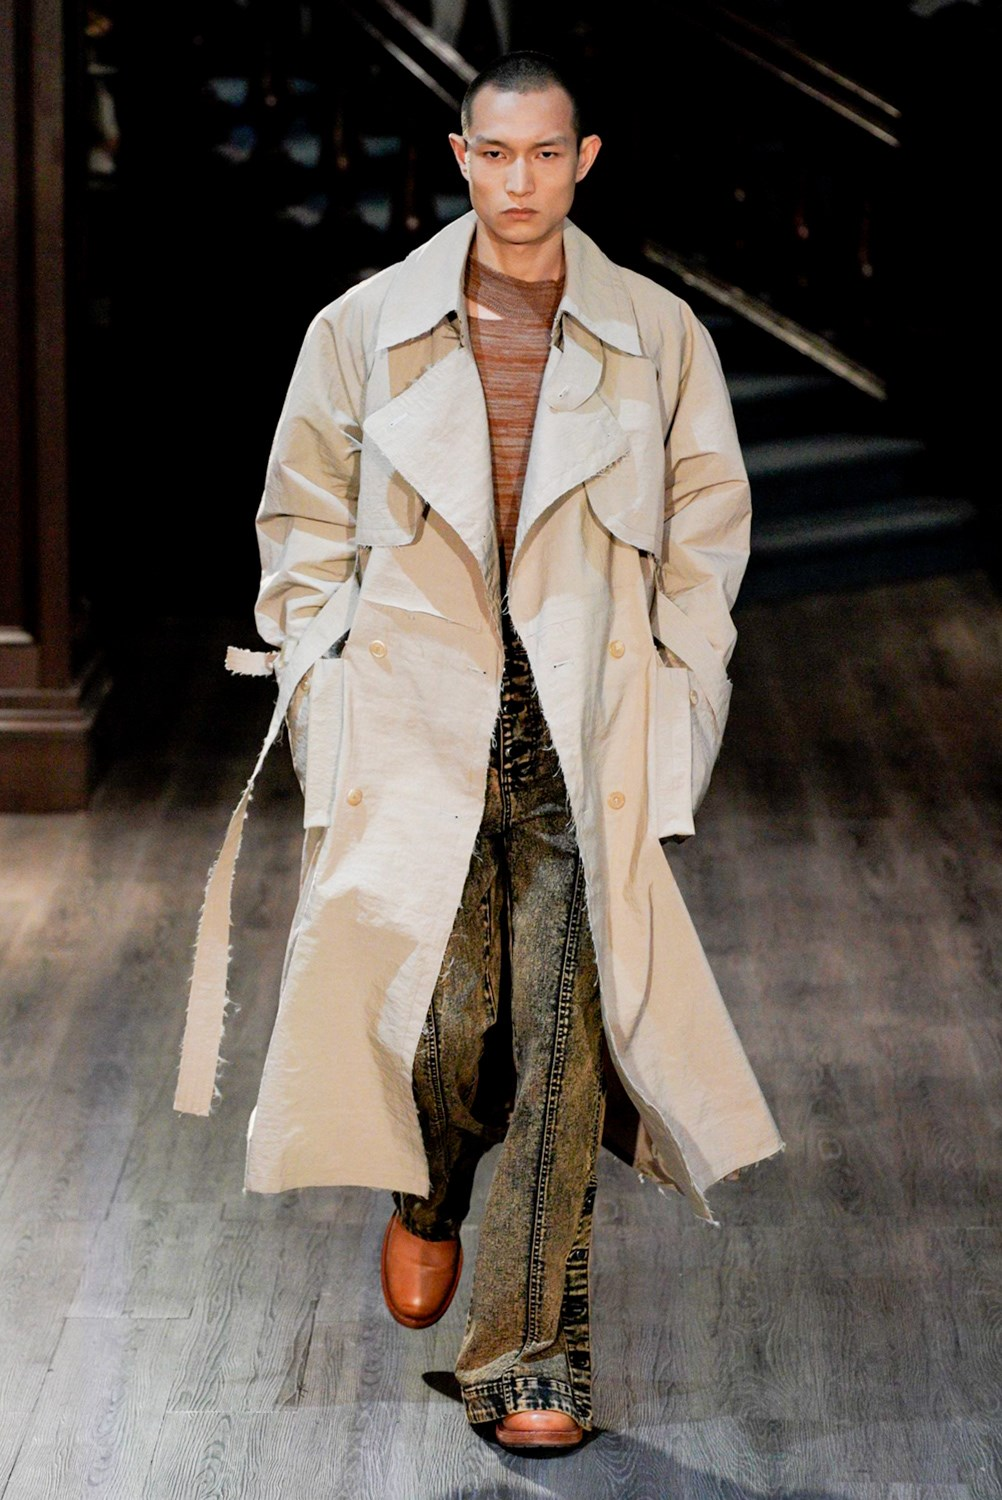 Eckhaus Latta Fall 2020 Fashion Show Photos